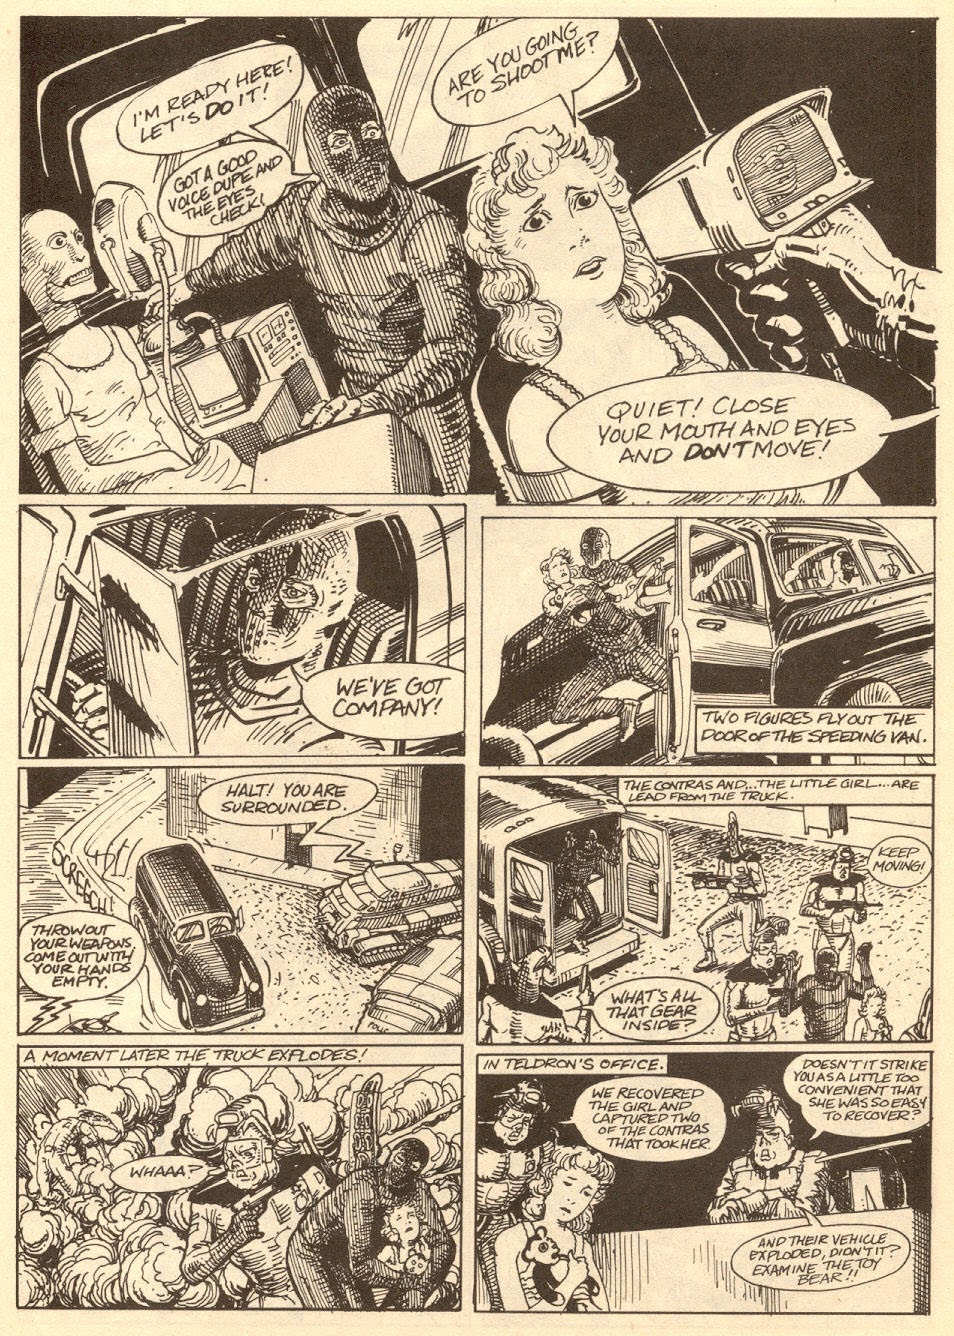 Commies from Mars: The Red Planet issue 6 - Page 34